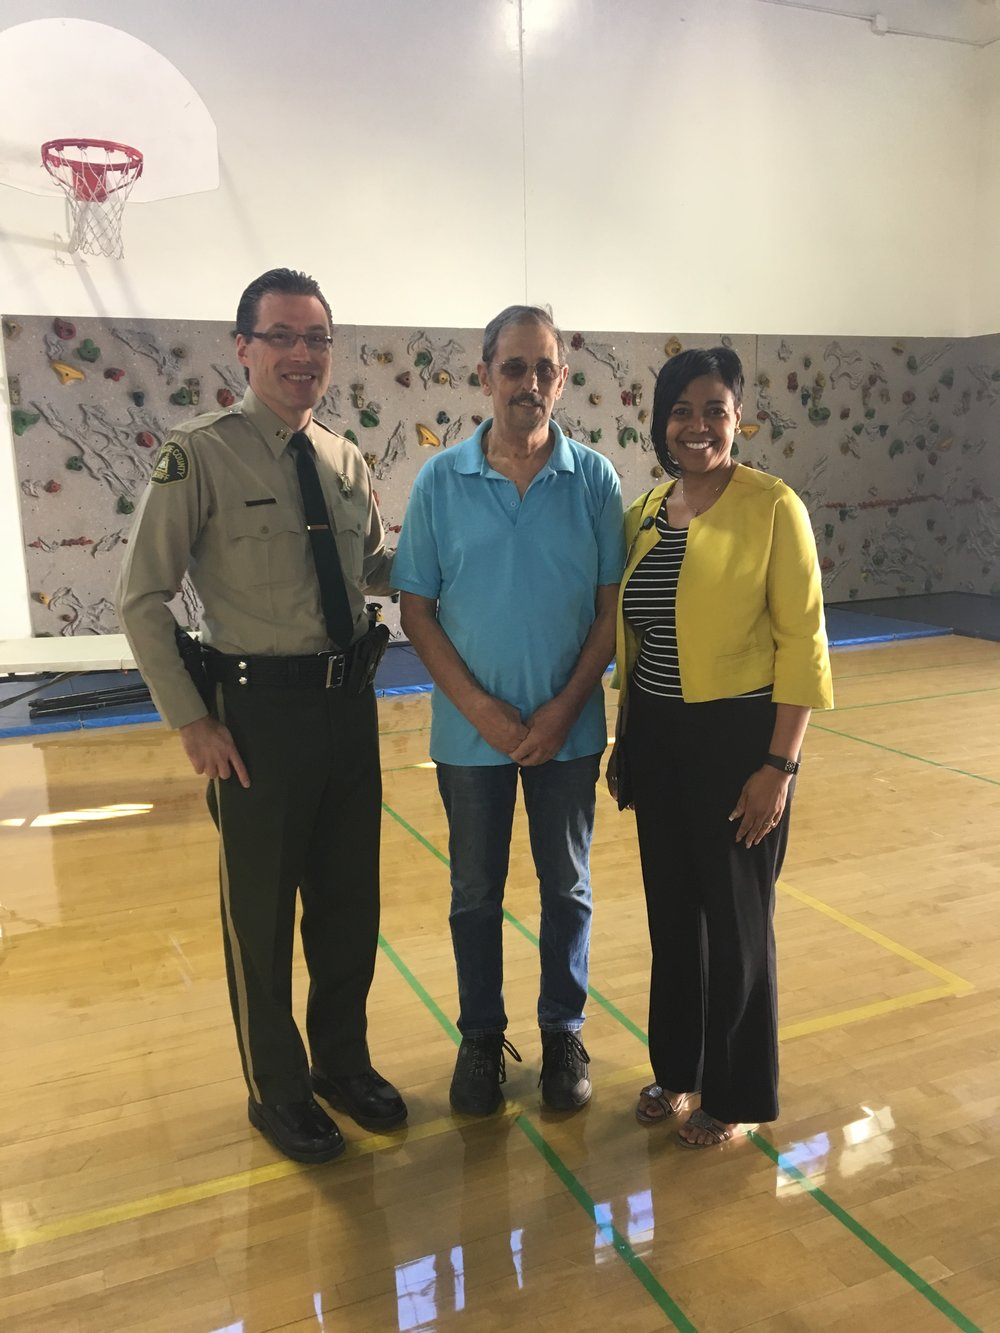 HOPE District 3B Chair, Ken Kidby Captain Purvis, City of Hemet - Riverside County Sheriff's Department Sundae Sayles, Legislative Assistant to Supervisor Chuck Washington